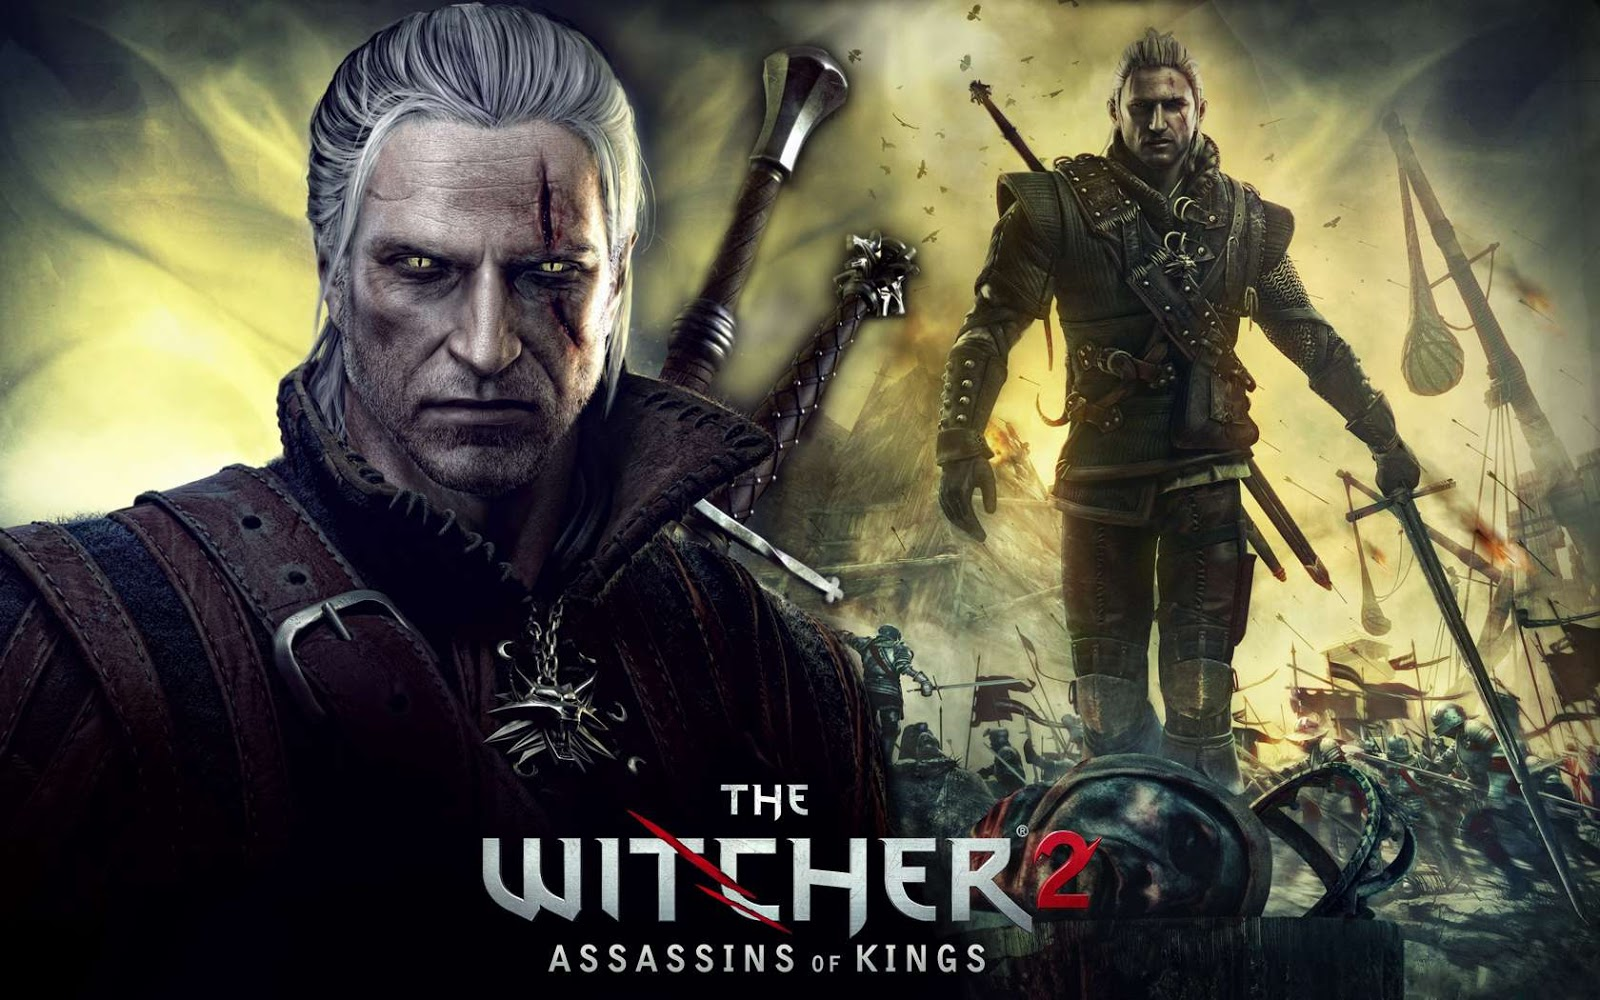 Fond dcran HD GRATUITS : The Witcher 2 : Assassins of Kings ...